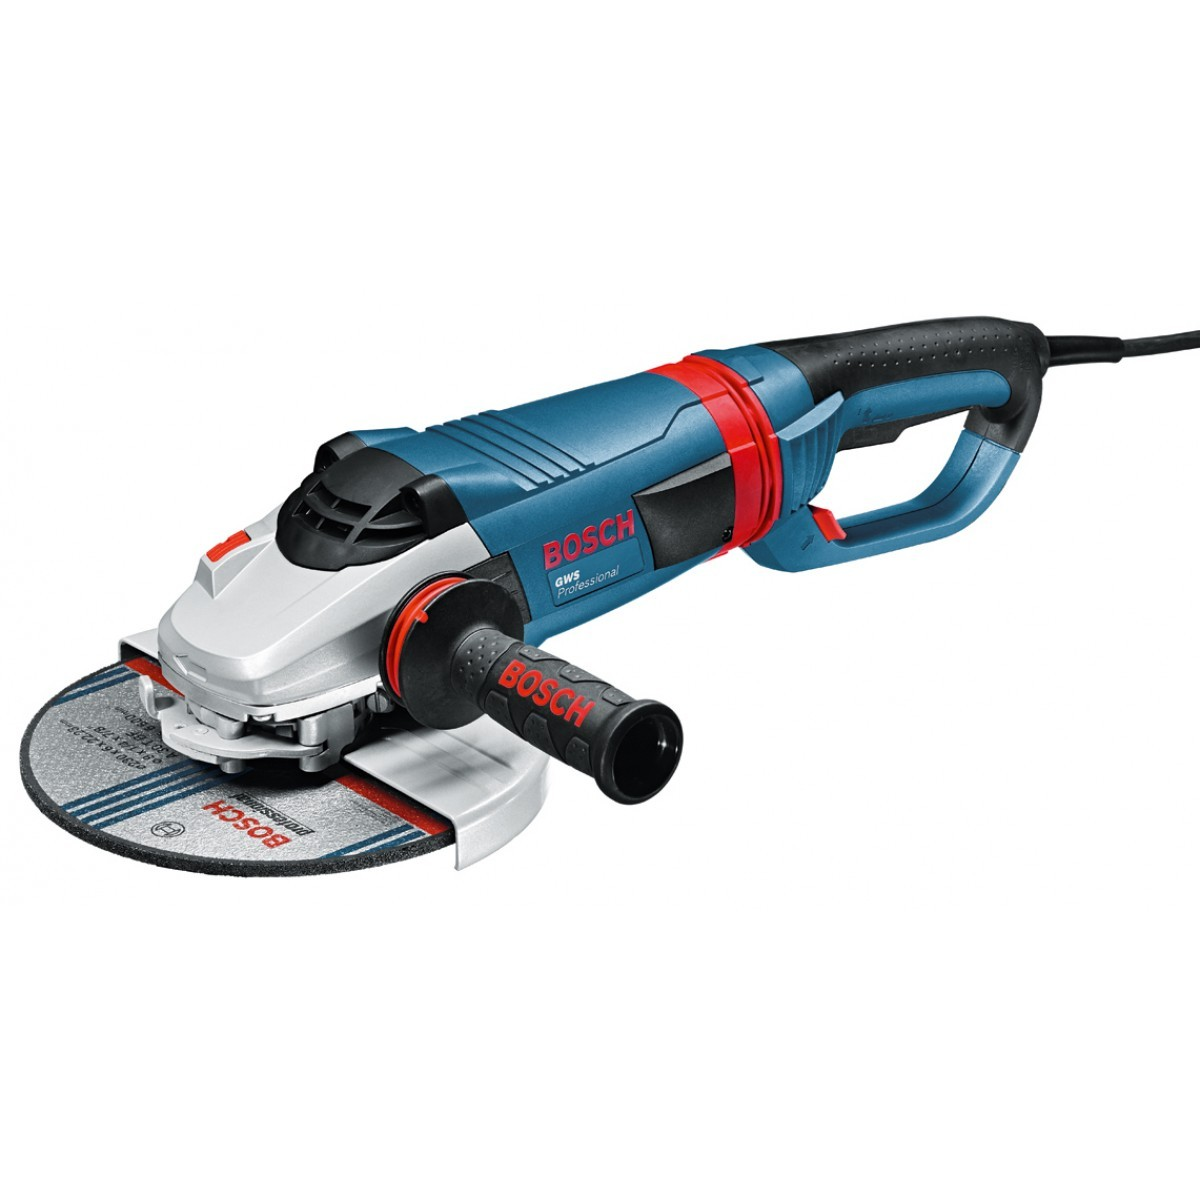 Bosch GWS 24-230 LVI 240v with Auxiliary Handle